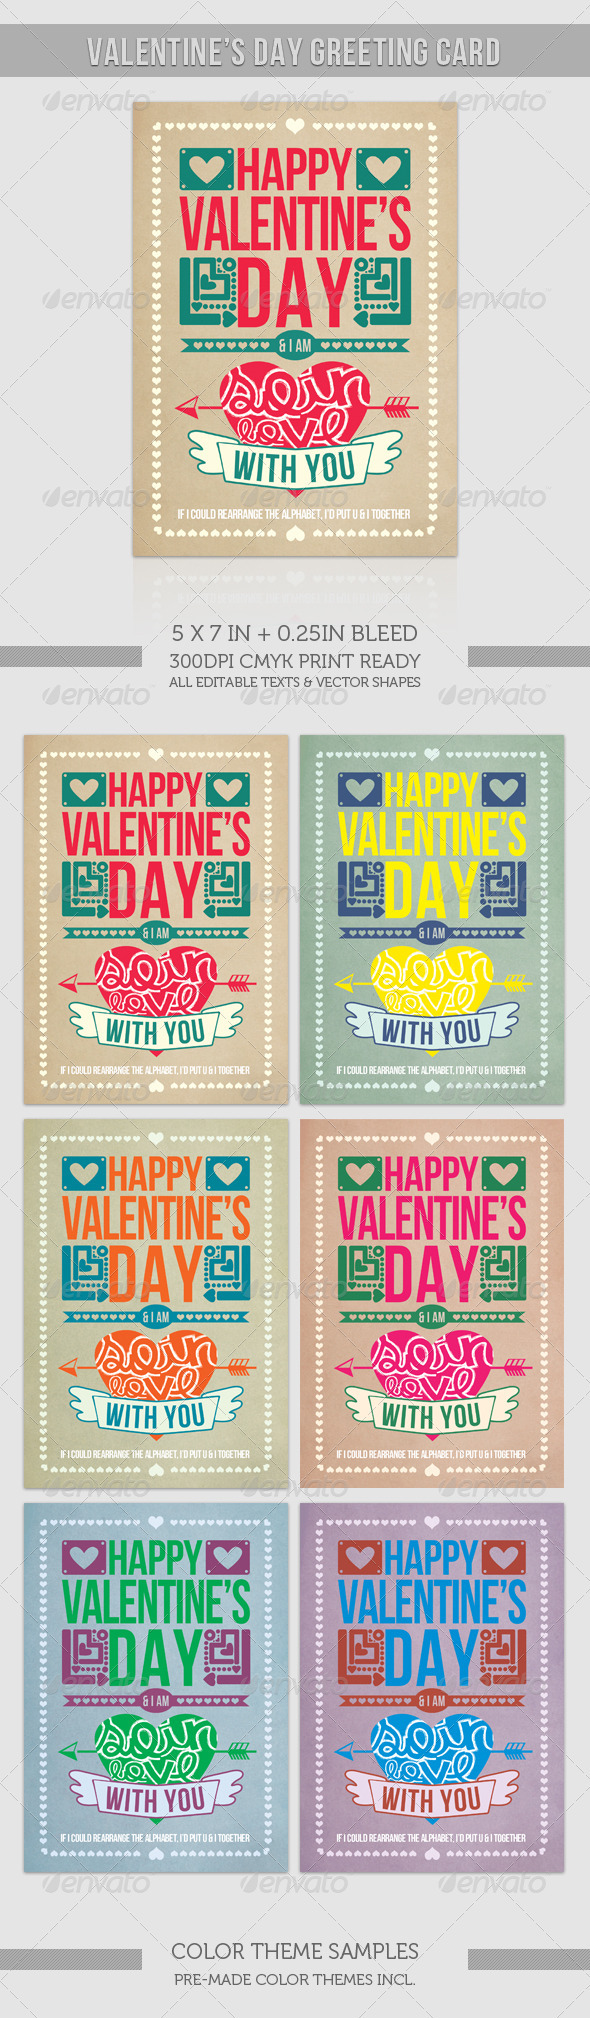 GraphicRiver Valentine Card So in Love With You 1203488